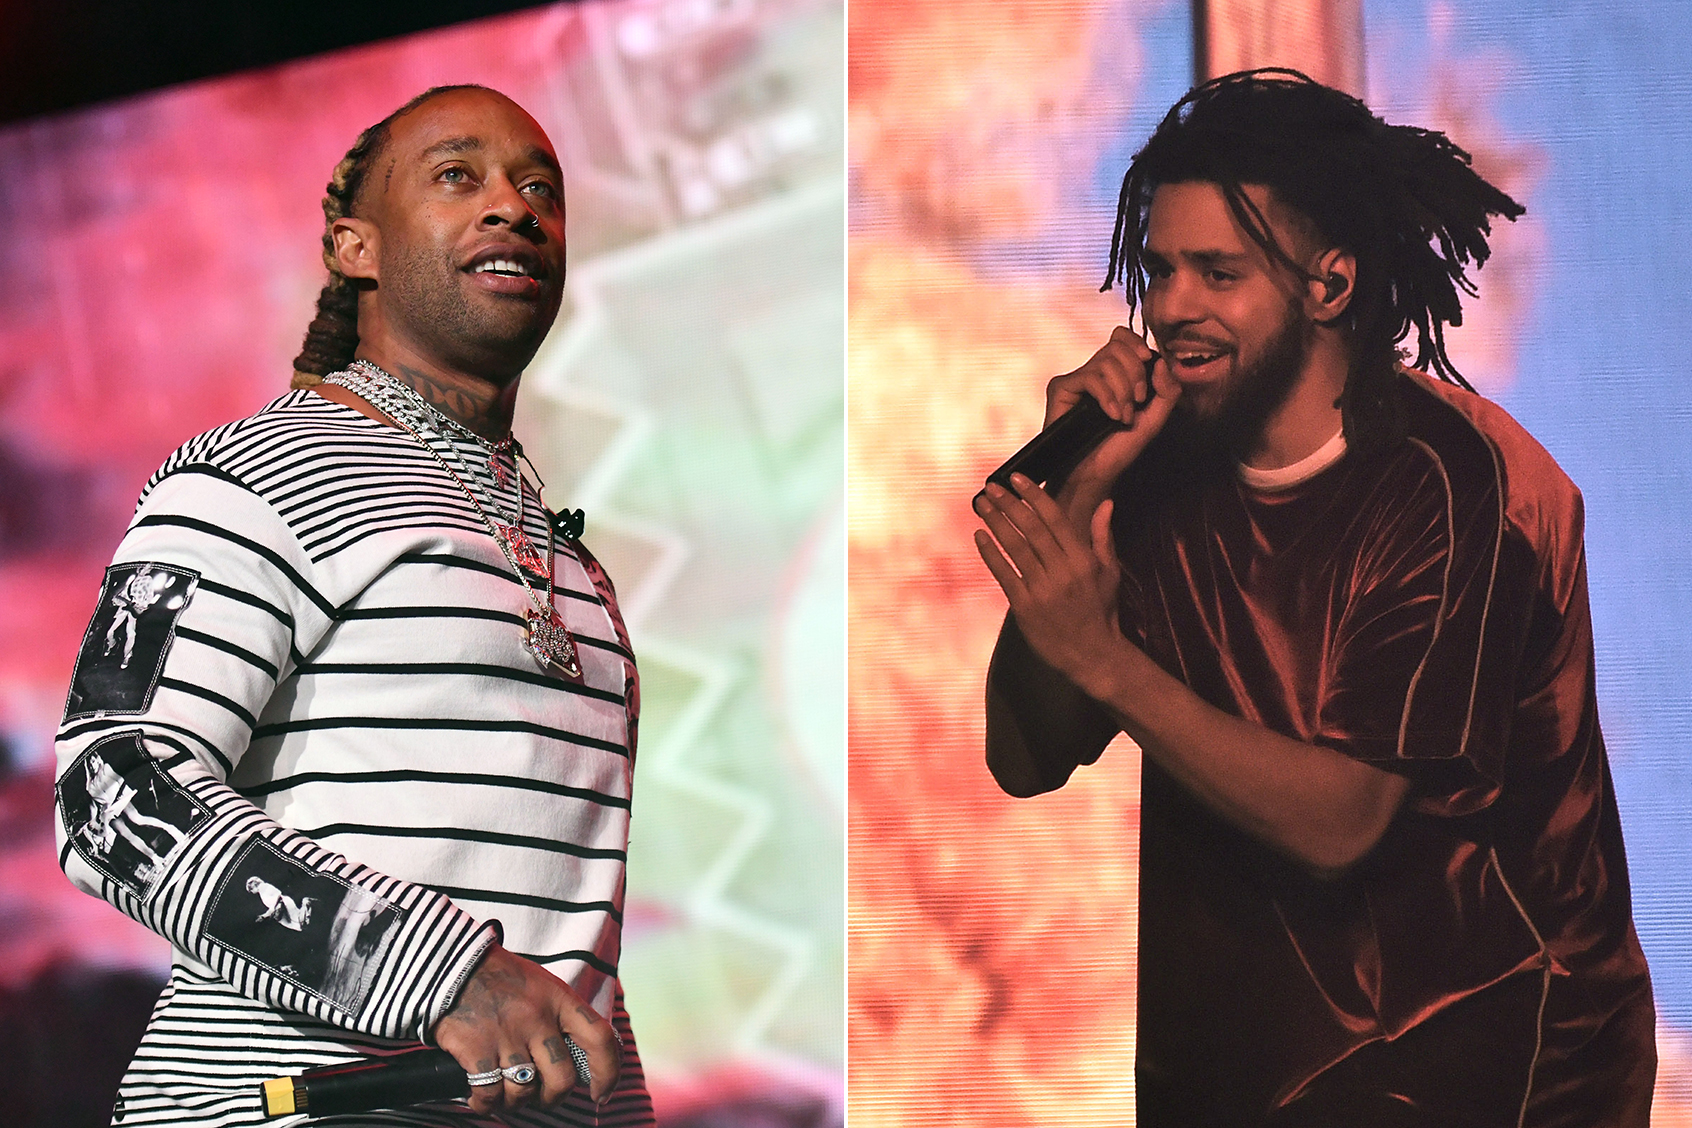 J. Cole (Finally) Turns in a Great R&B Guest Verse on Ty Dolla $ign's 'Purple Emoji'